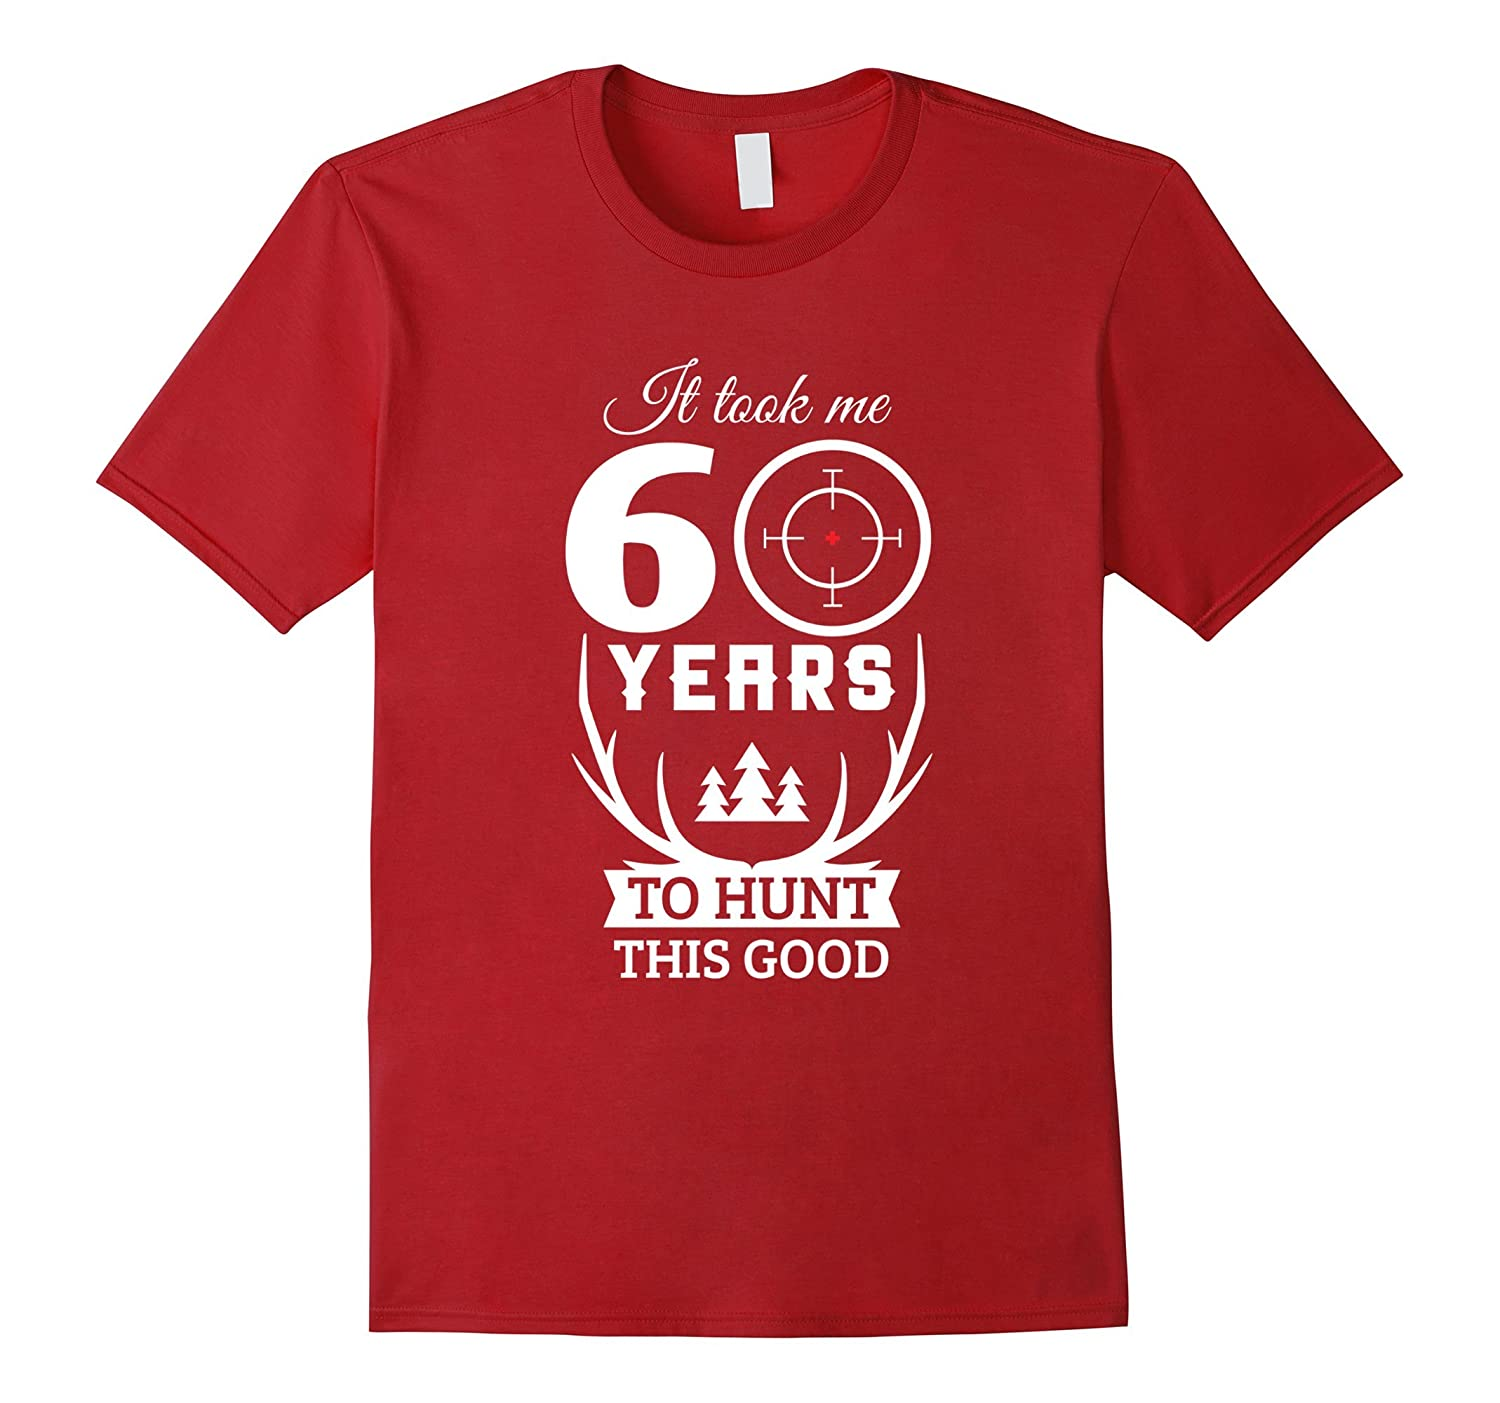 60 Years Old Happy 60th Birthday for Hunters-Rose